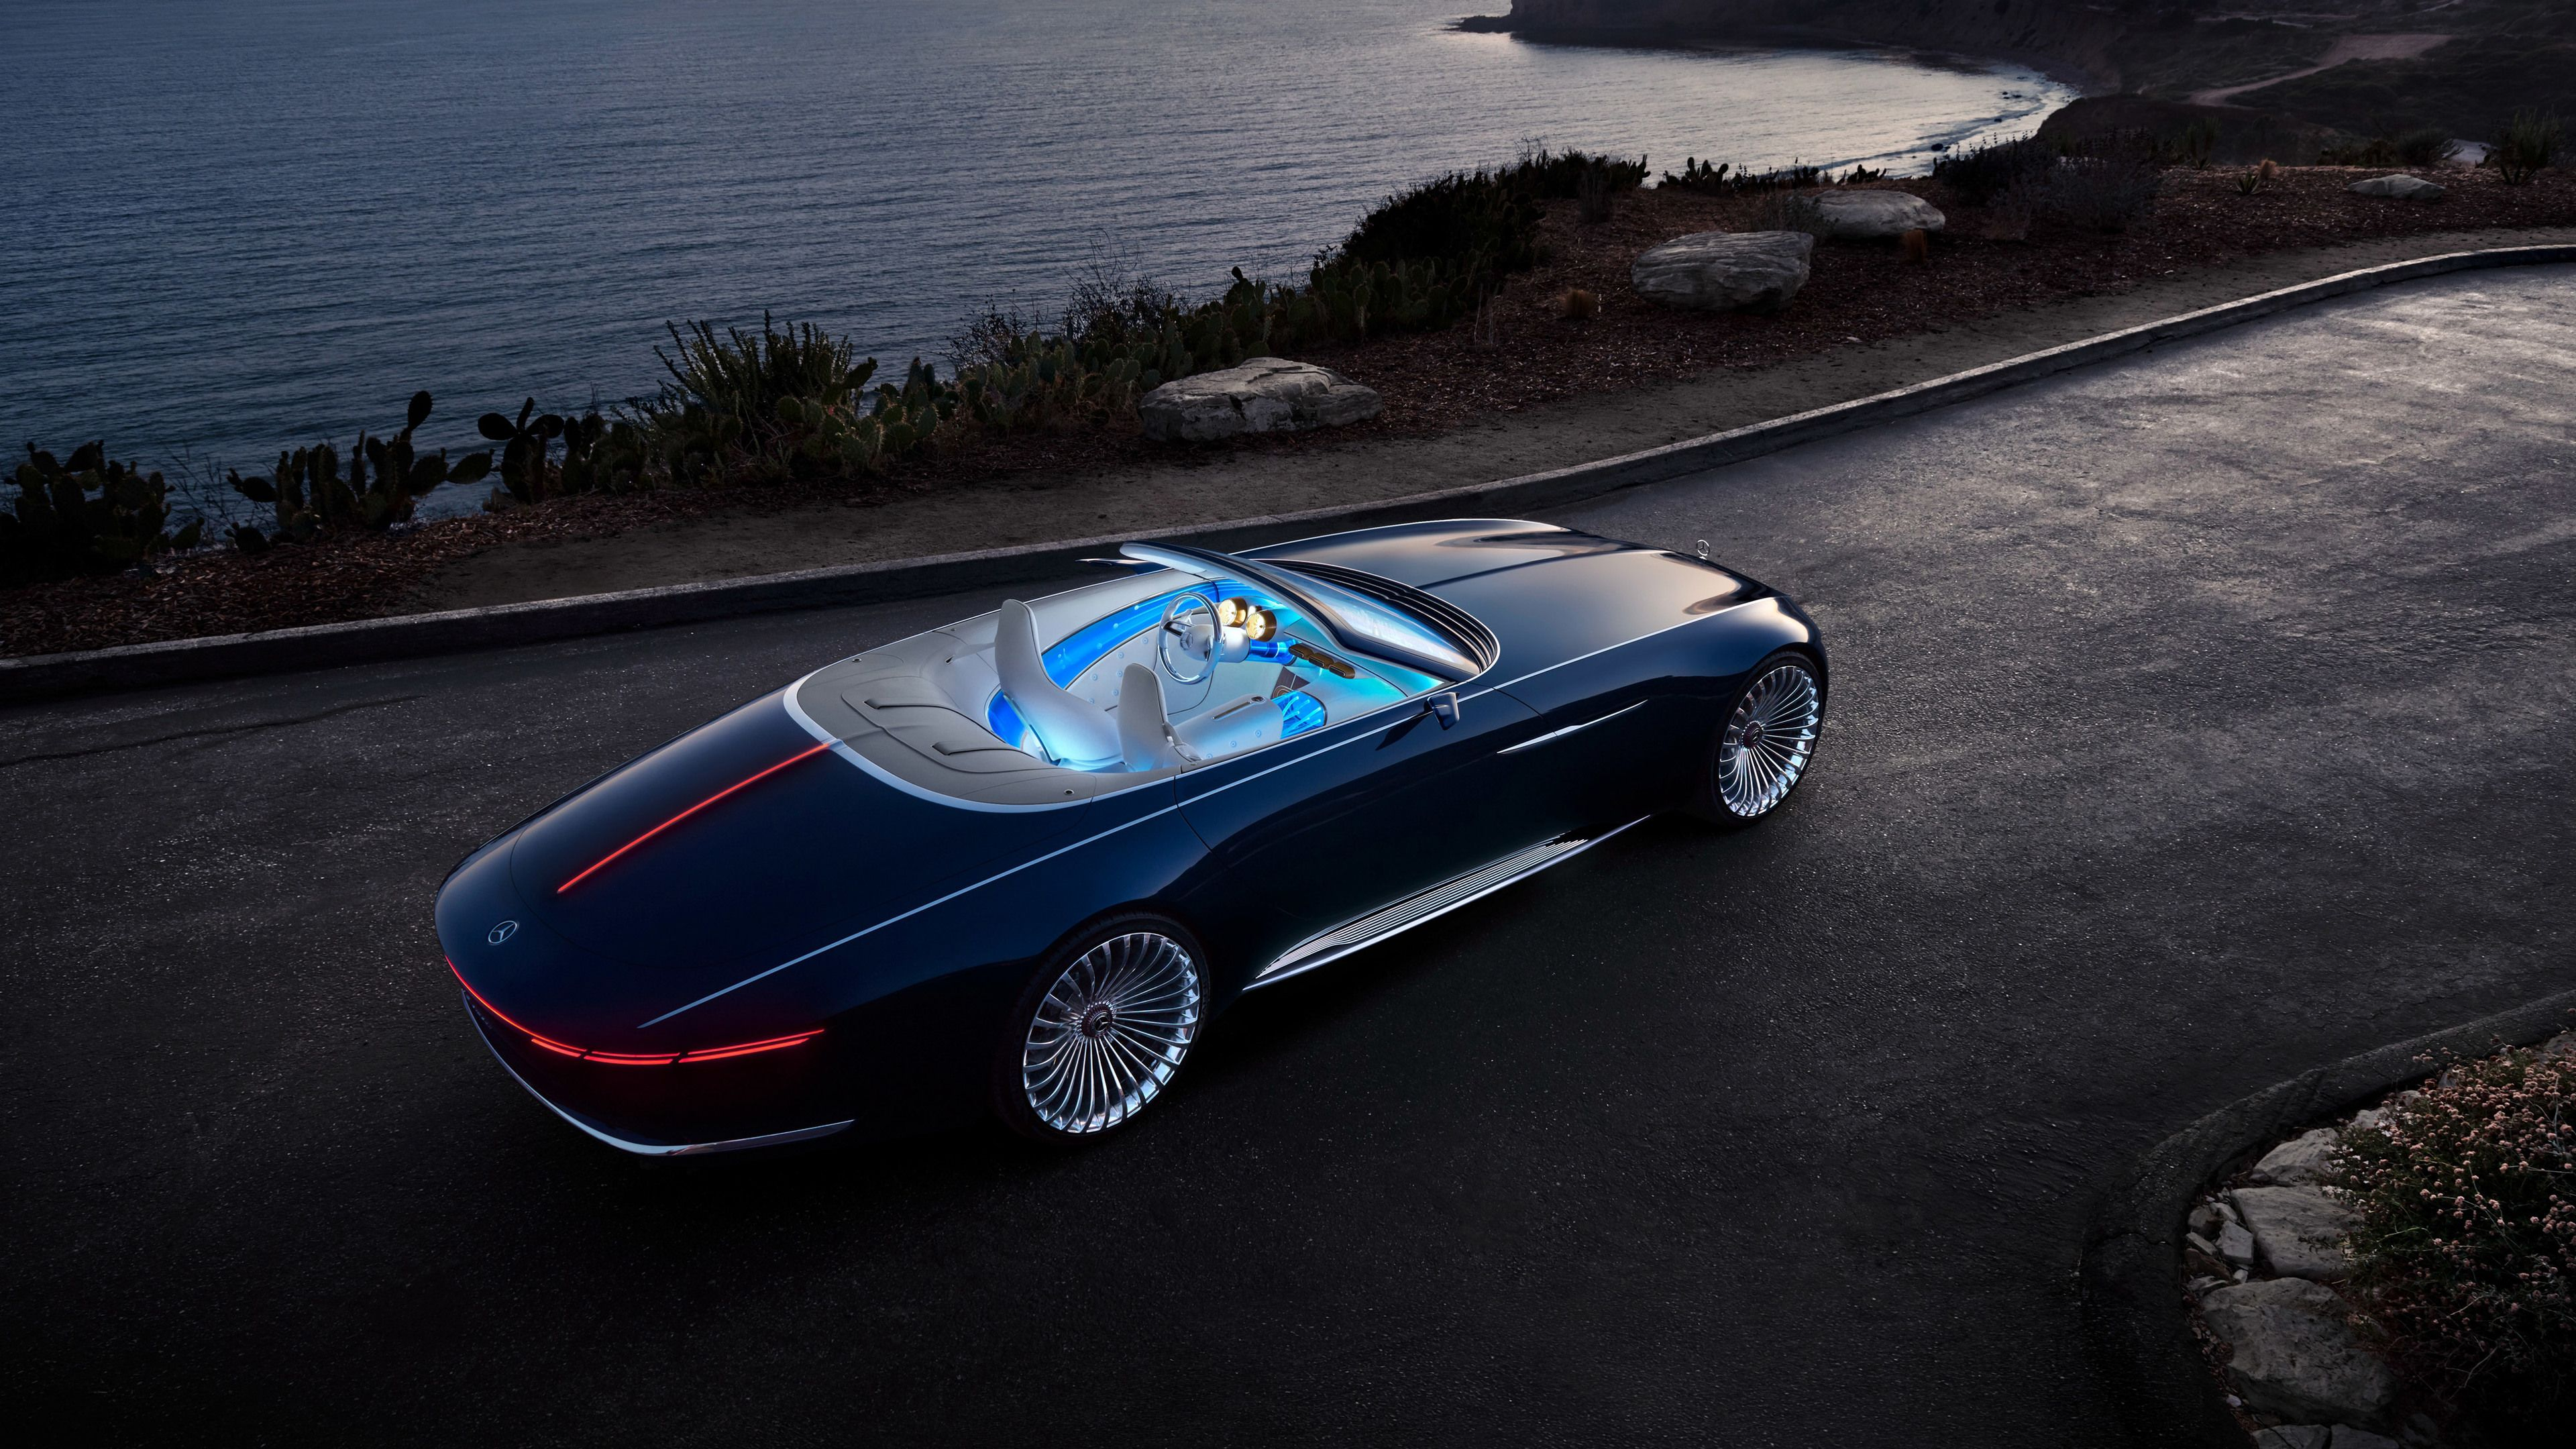 Mercedes Maybach 6 Cabriolet mercedes wallpapers, mercedes maybach wallpapers, h…